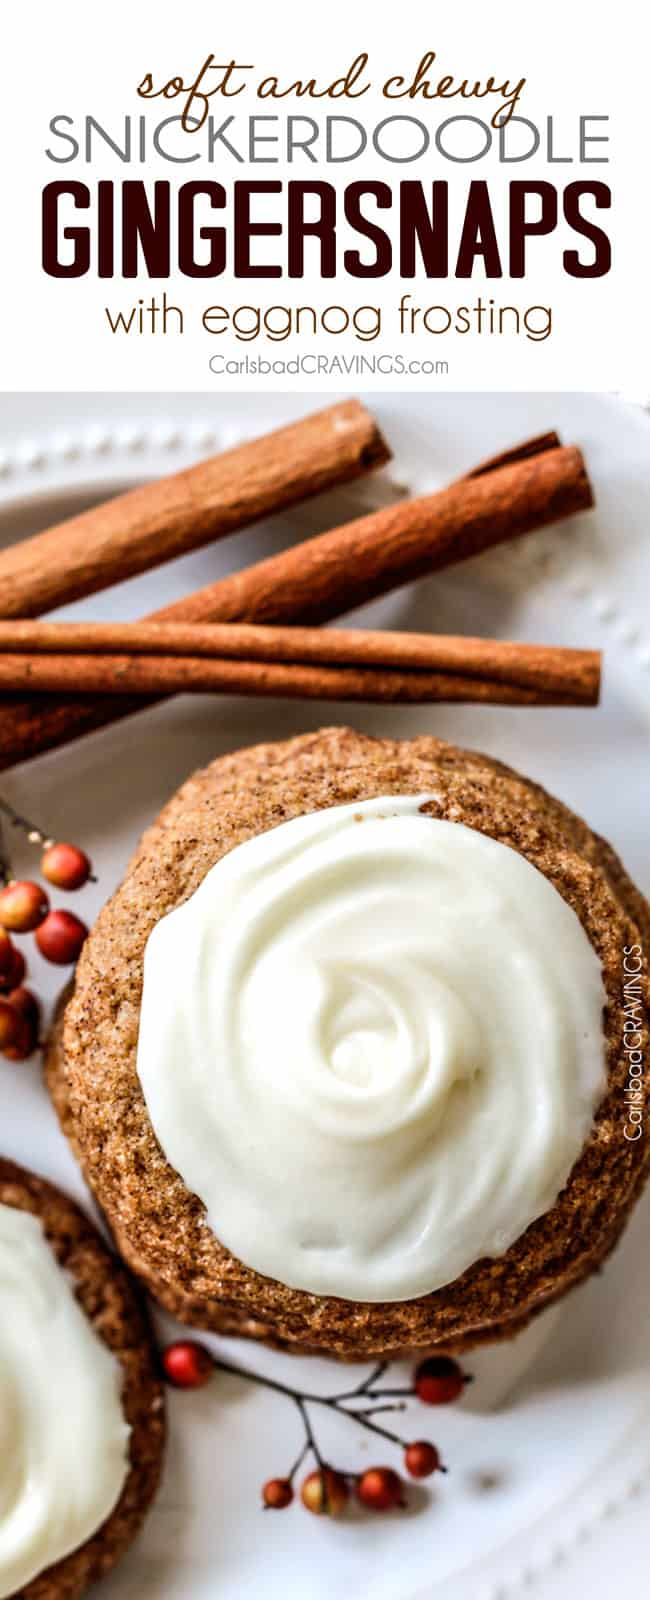 Perfectly spiced soft and Chewy Snickerdoodle Gingersnap Cookies with Eggnog Frosting are melt in your mouth delicious! Our favorite Christmas Cookie and the only gingersnap cookie recipe you will ever need!